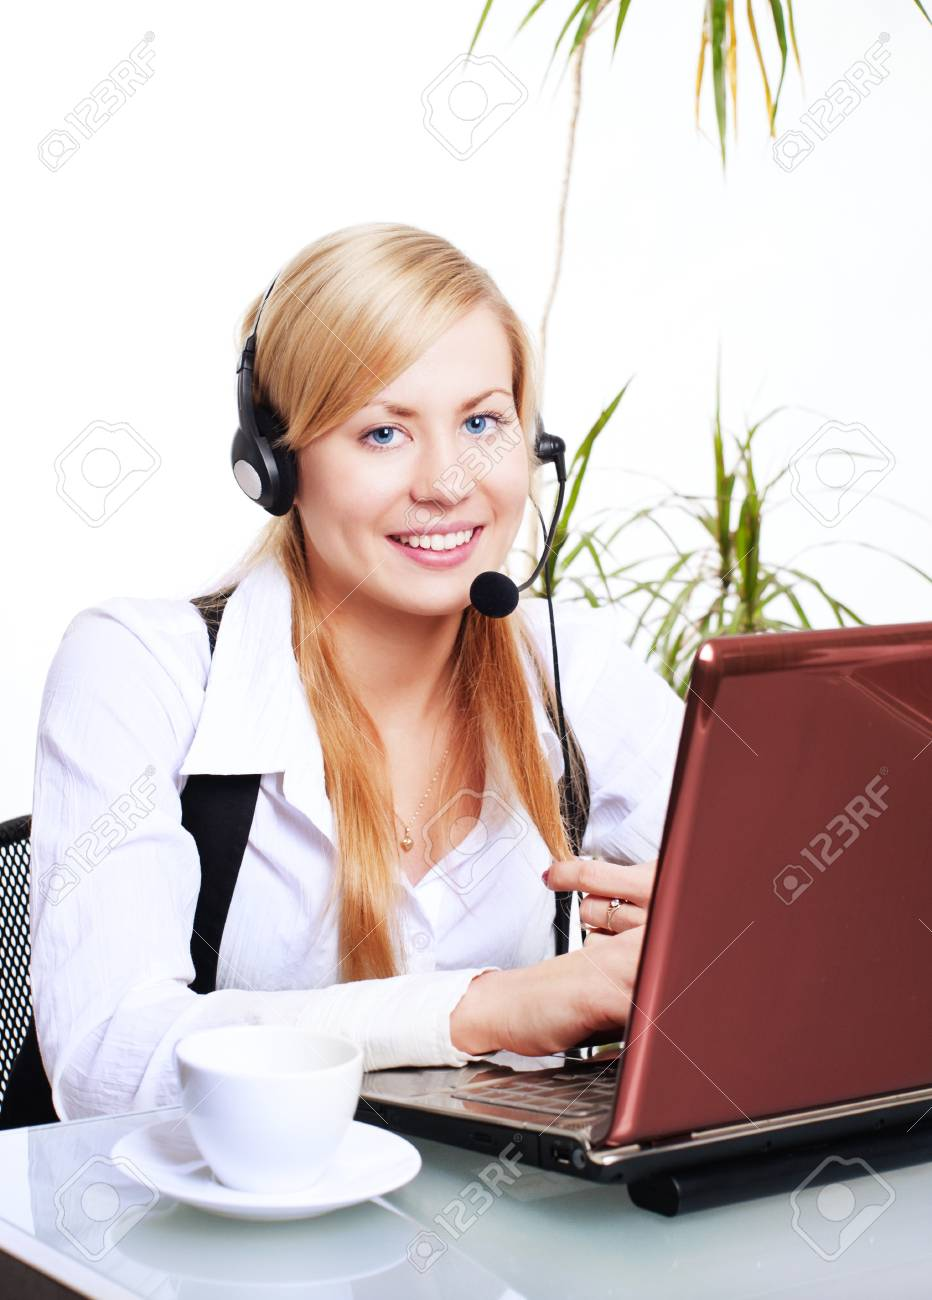 smiling blond woman working with computer in office Stock Photo - 8036589